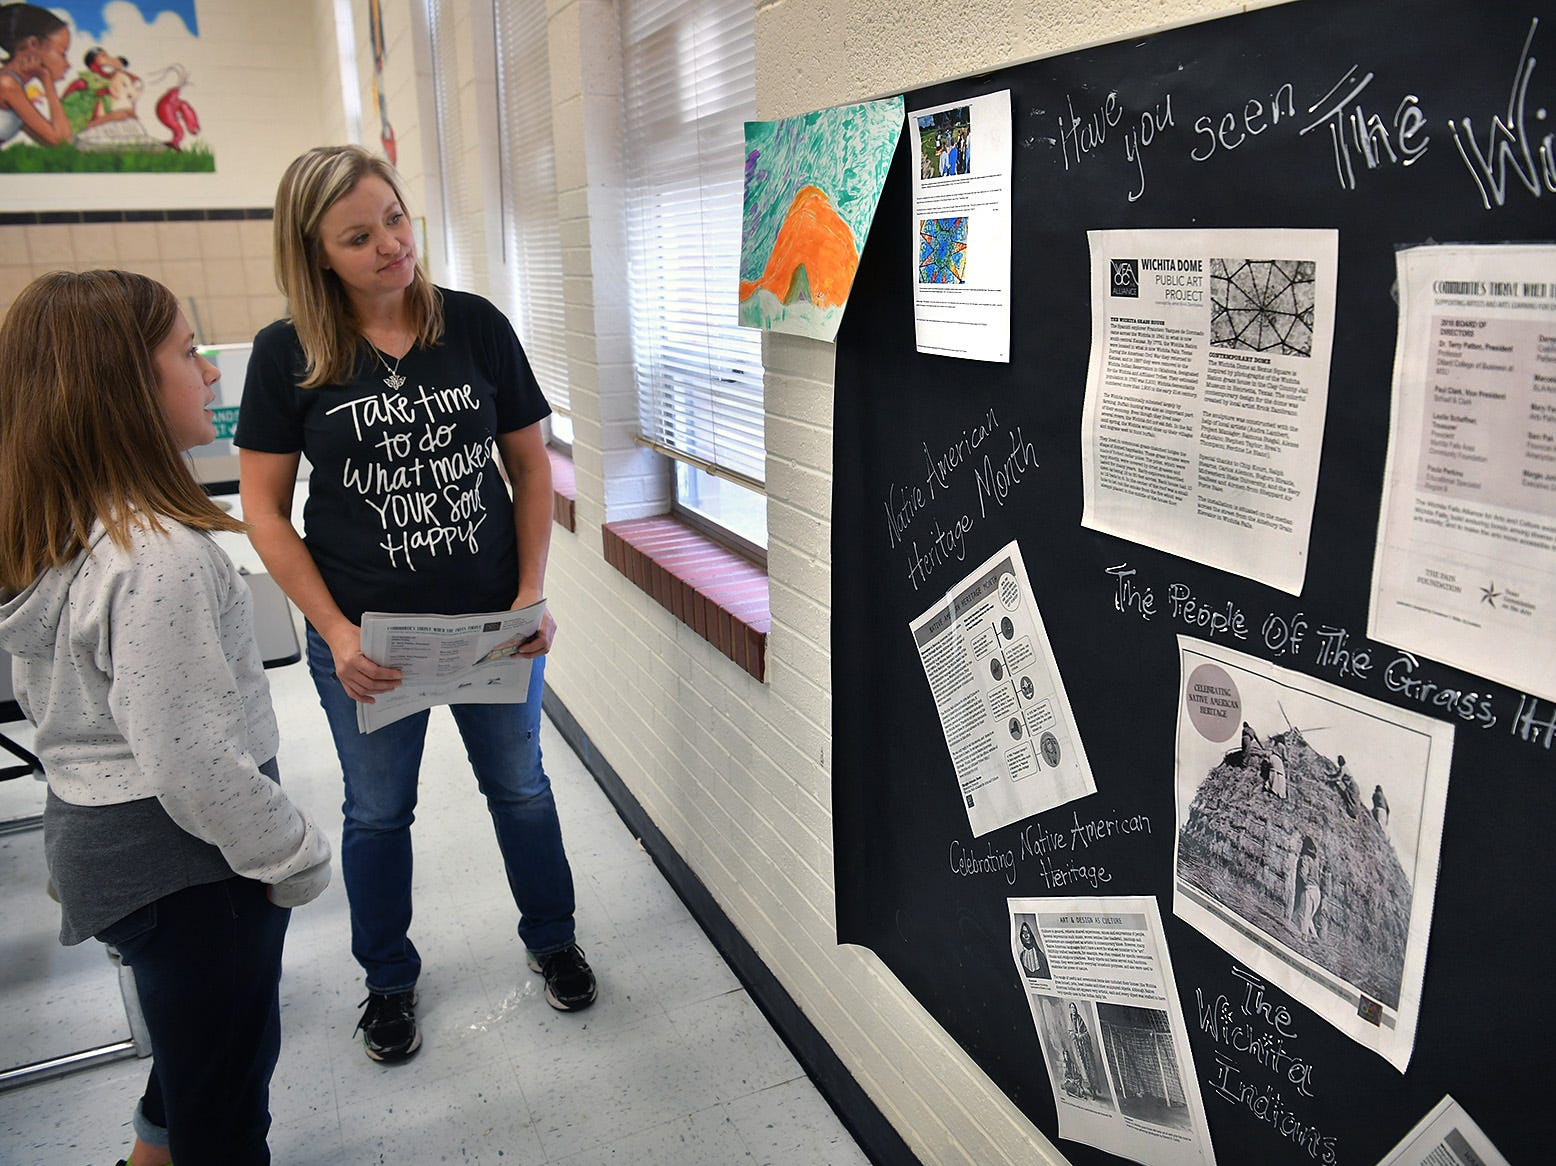 Fain Elementary art teacher Audra Miller talks with her student, Emma Schreiber, about the artwork she created while working on the assignment to celebrate National Native American Heritage Month.